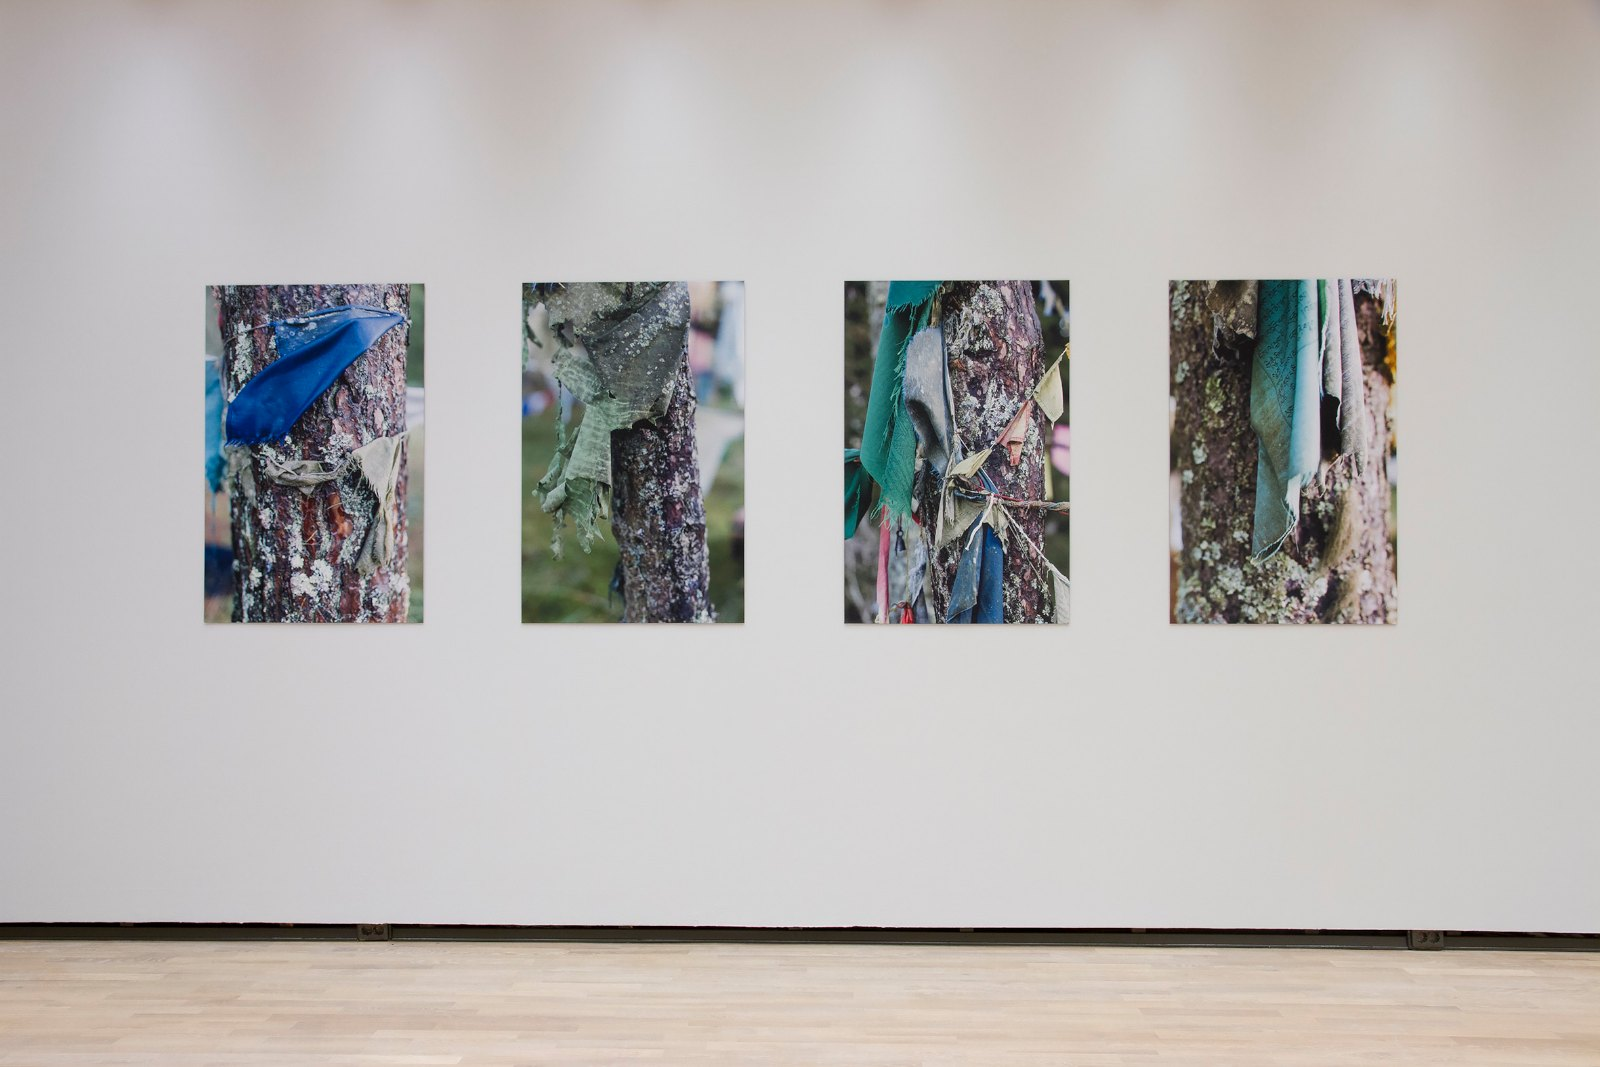 Prayers (1-4), 2014, photographs printed and mounted on textile, each 77 x 118 cm, ed. 4. Installation view Marte Johnslien, Forms of Protest, Henie Onstad Kunstsenter, 2014-2015